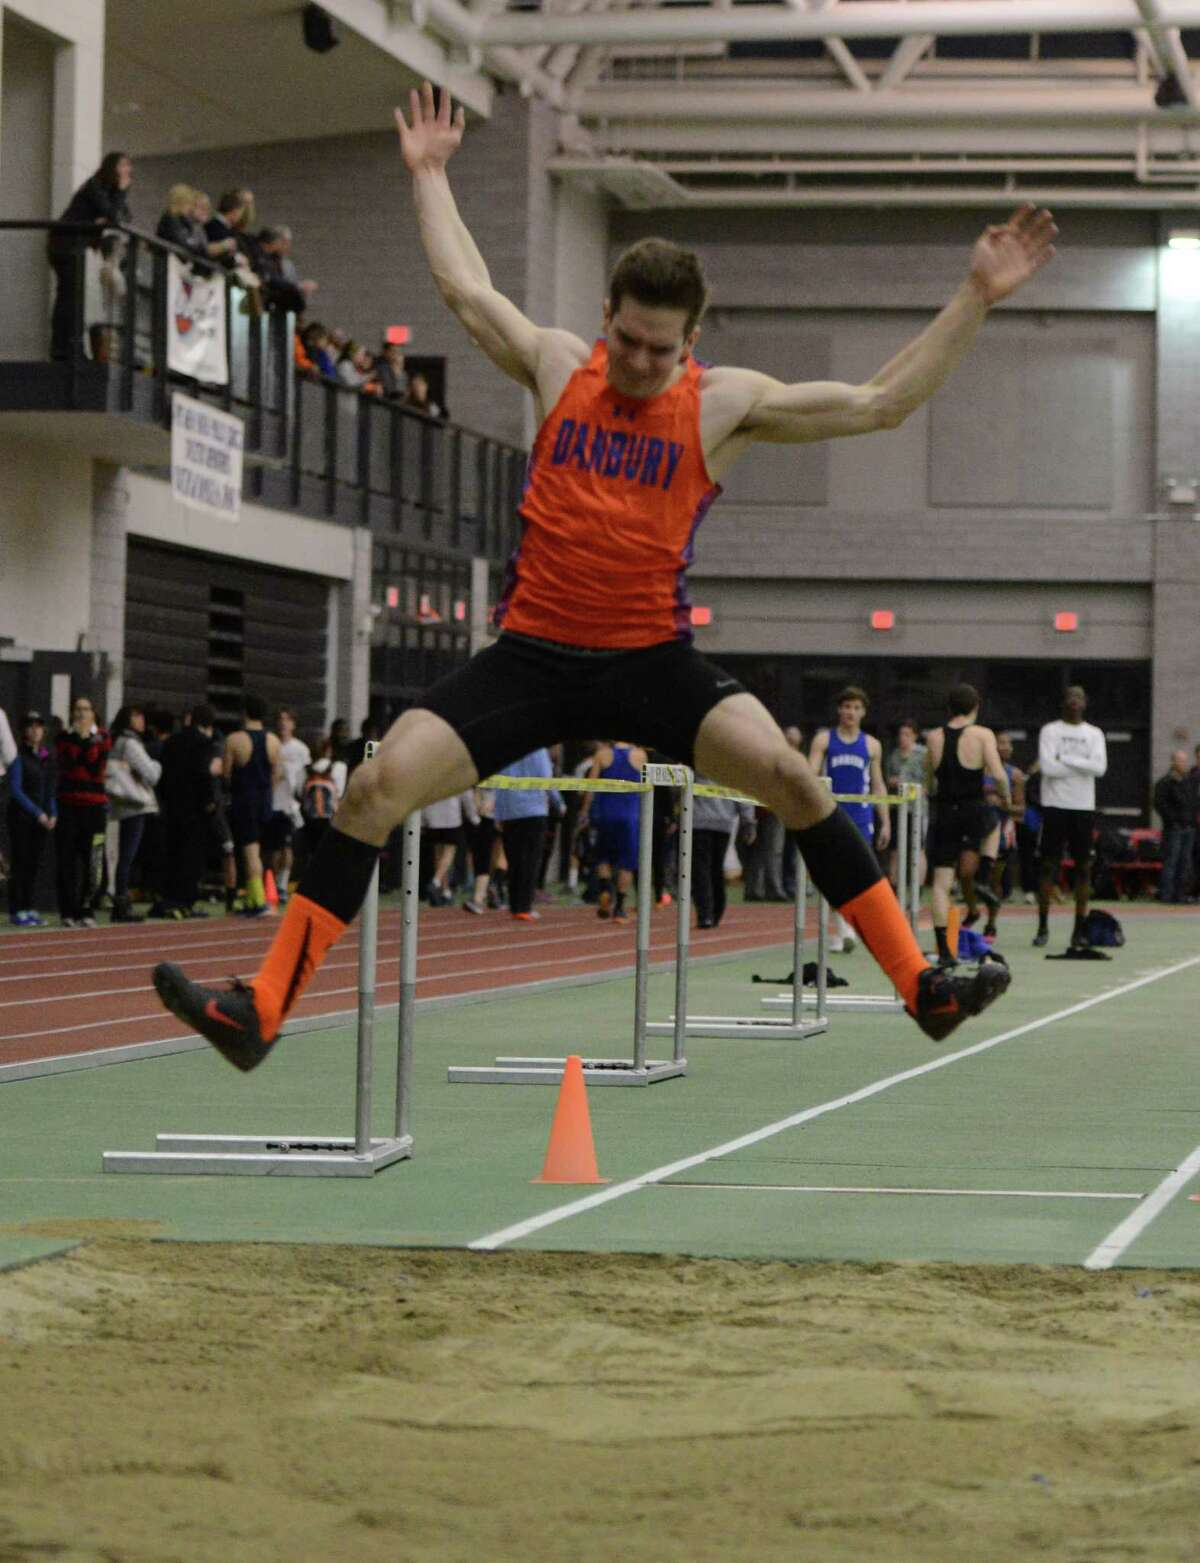 Danbury's Mike Morrow competes in the long jump event Thursday, Feb. 5, 2015, during the FCIAC boys and girls indoor track and field championhsips at the Floyd Little Athletic Center in New Haven, Conn.